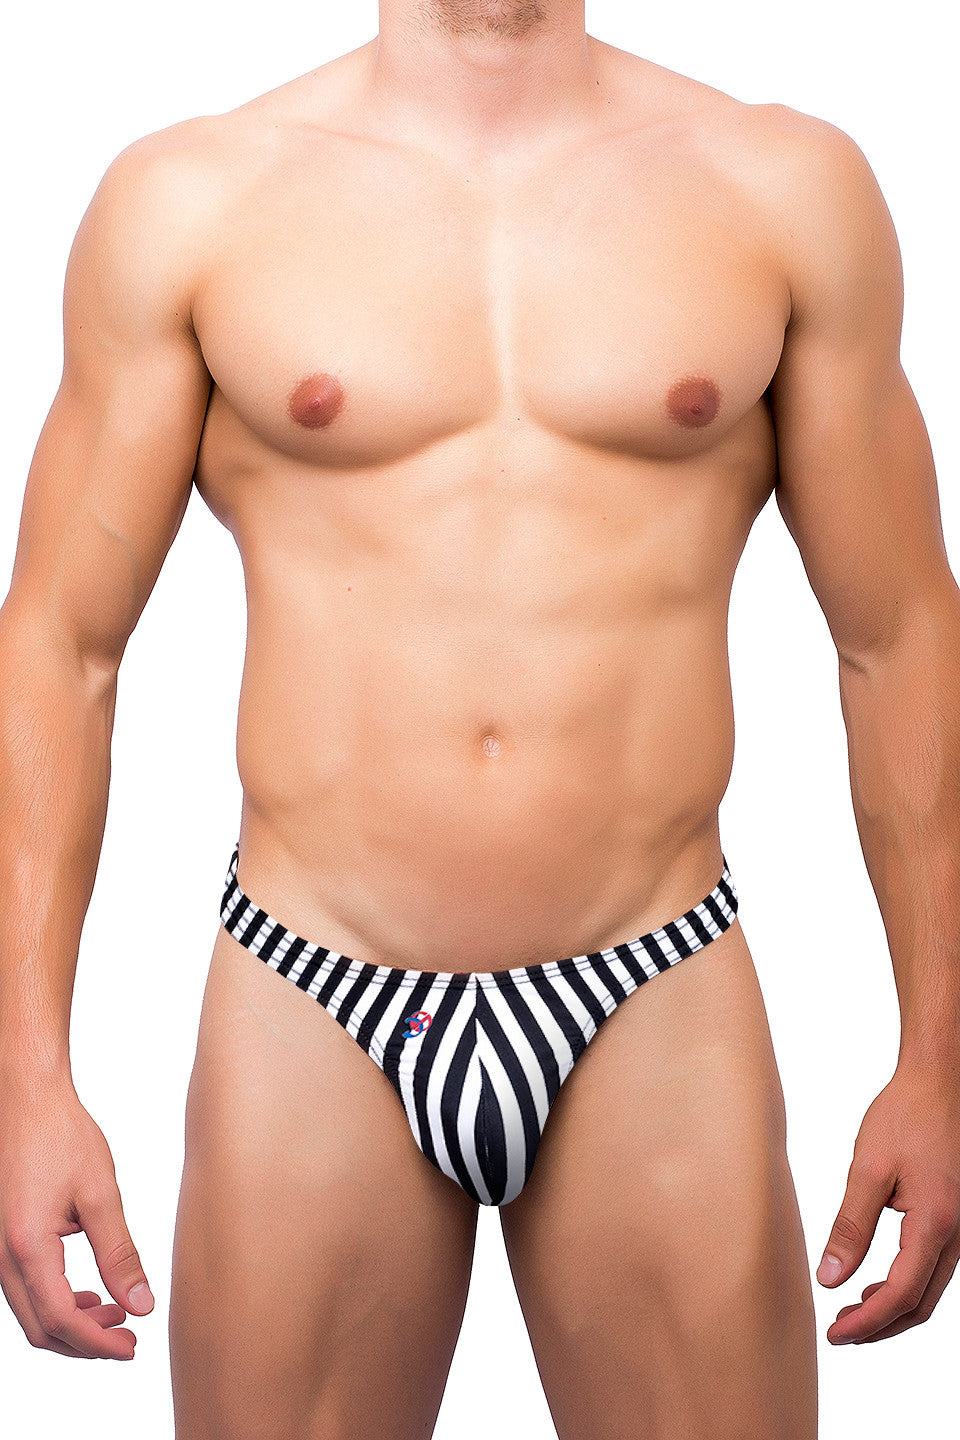 Classic Thong - Jail Pattern